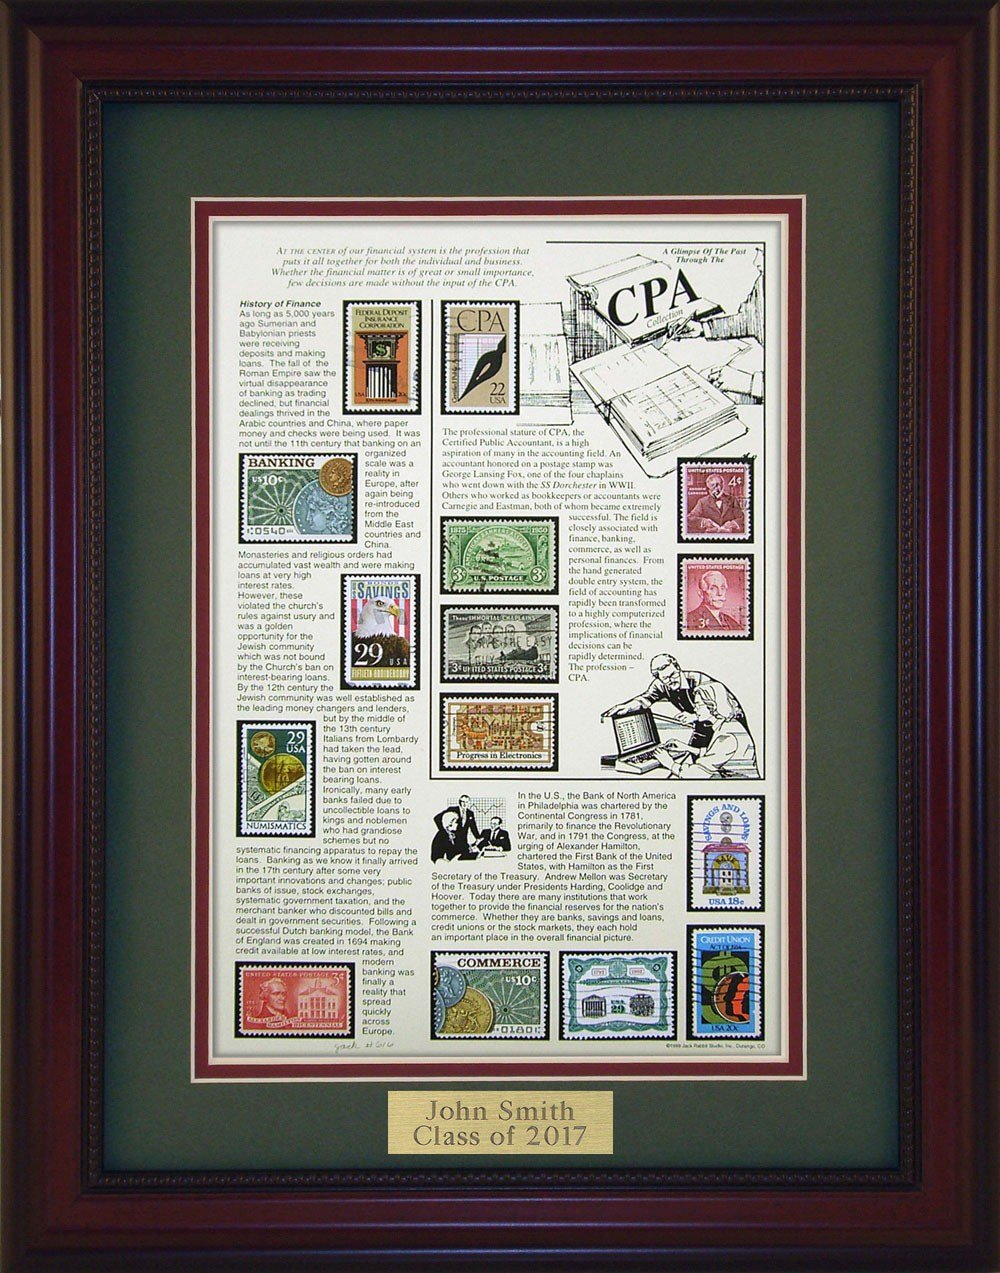 CPA - Unique Framed Collectible (A Great Gift Idea) with Personalized Engraved Plate